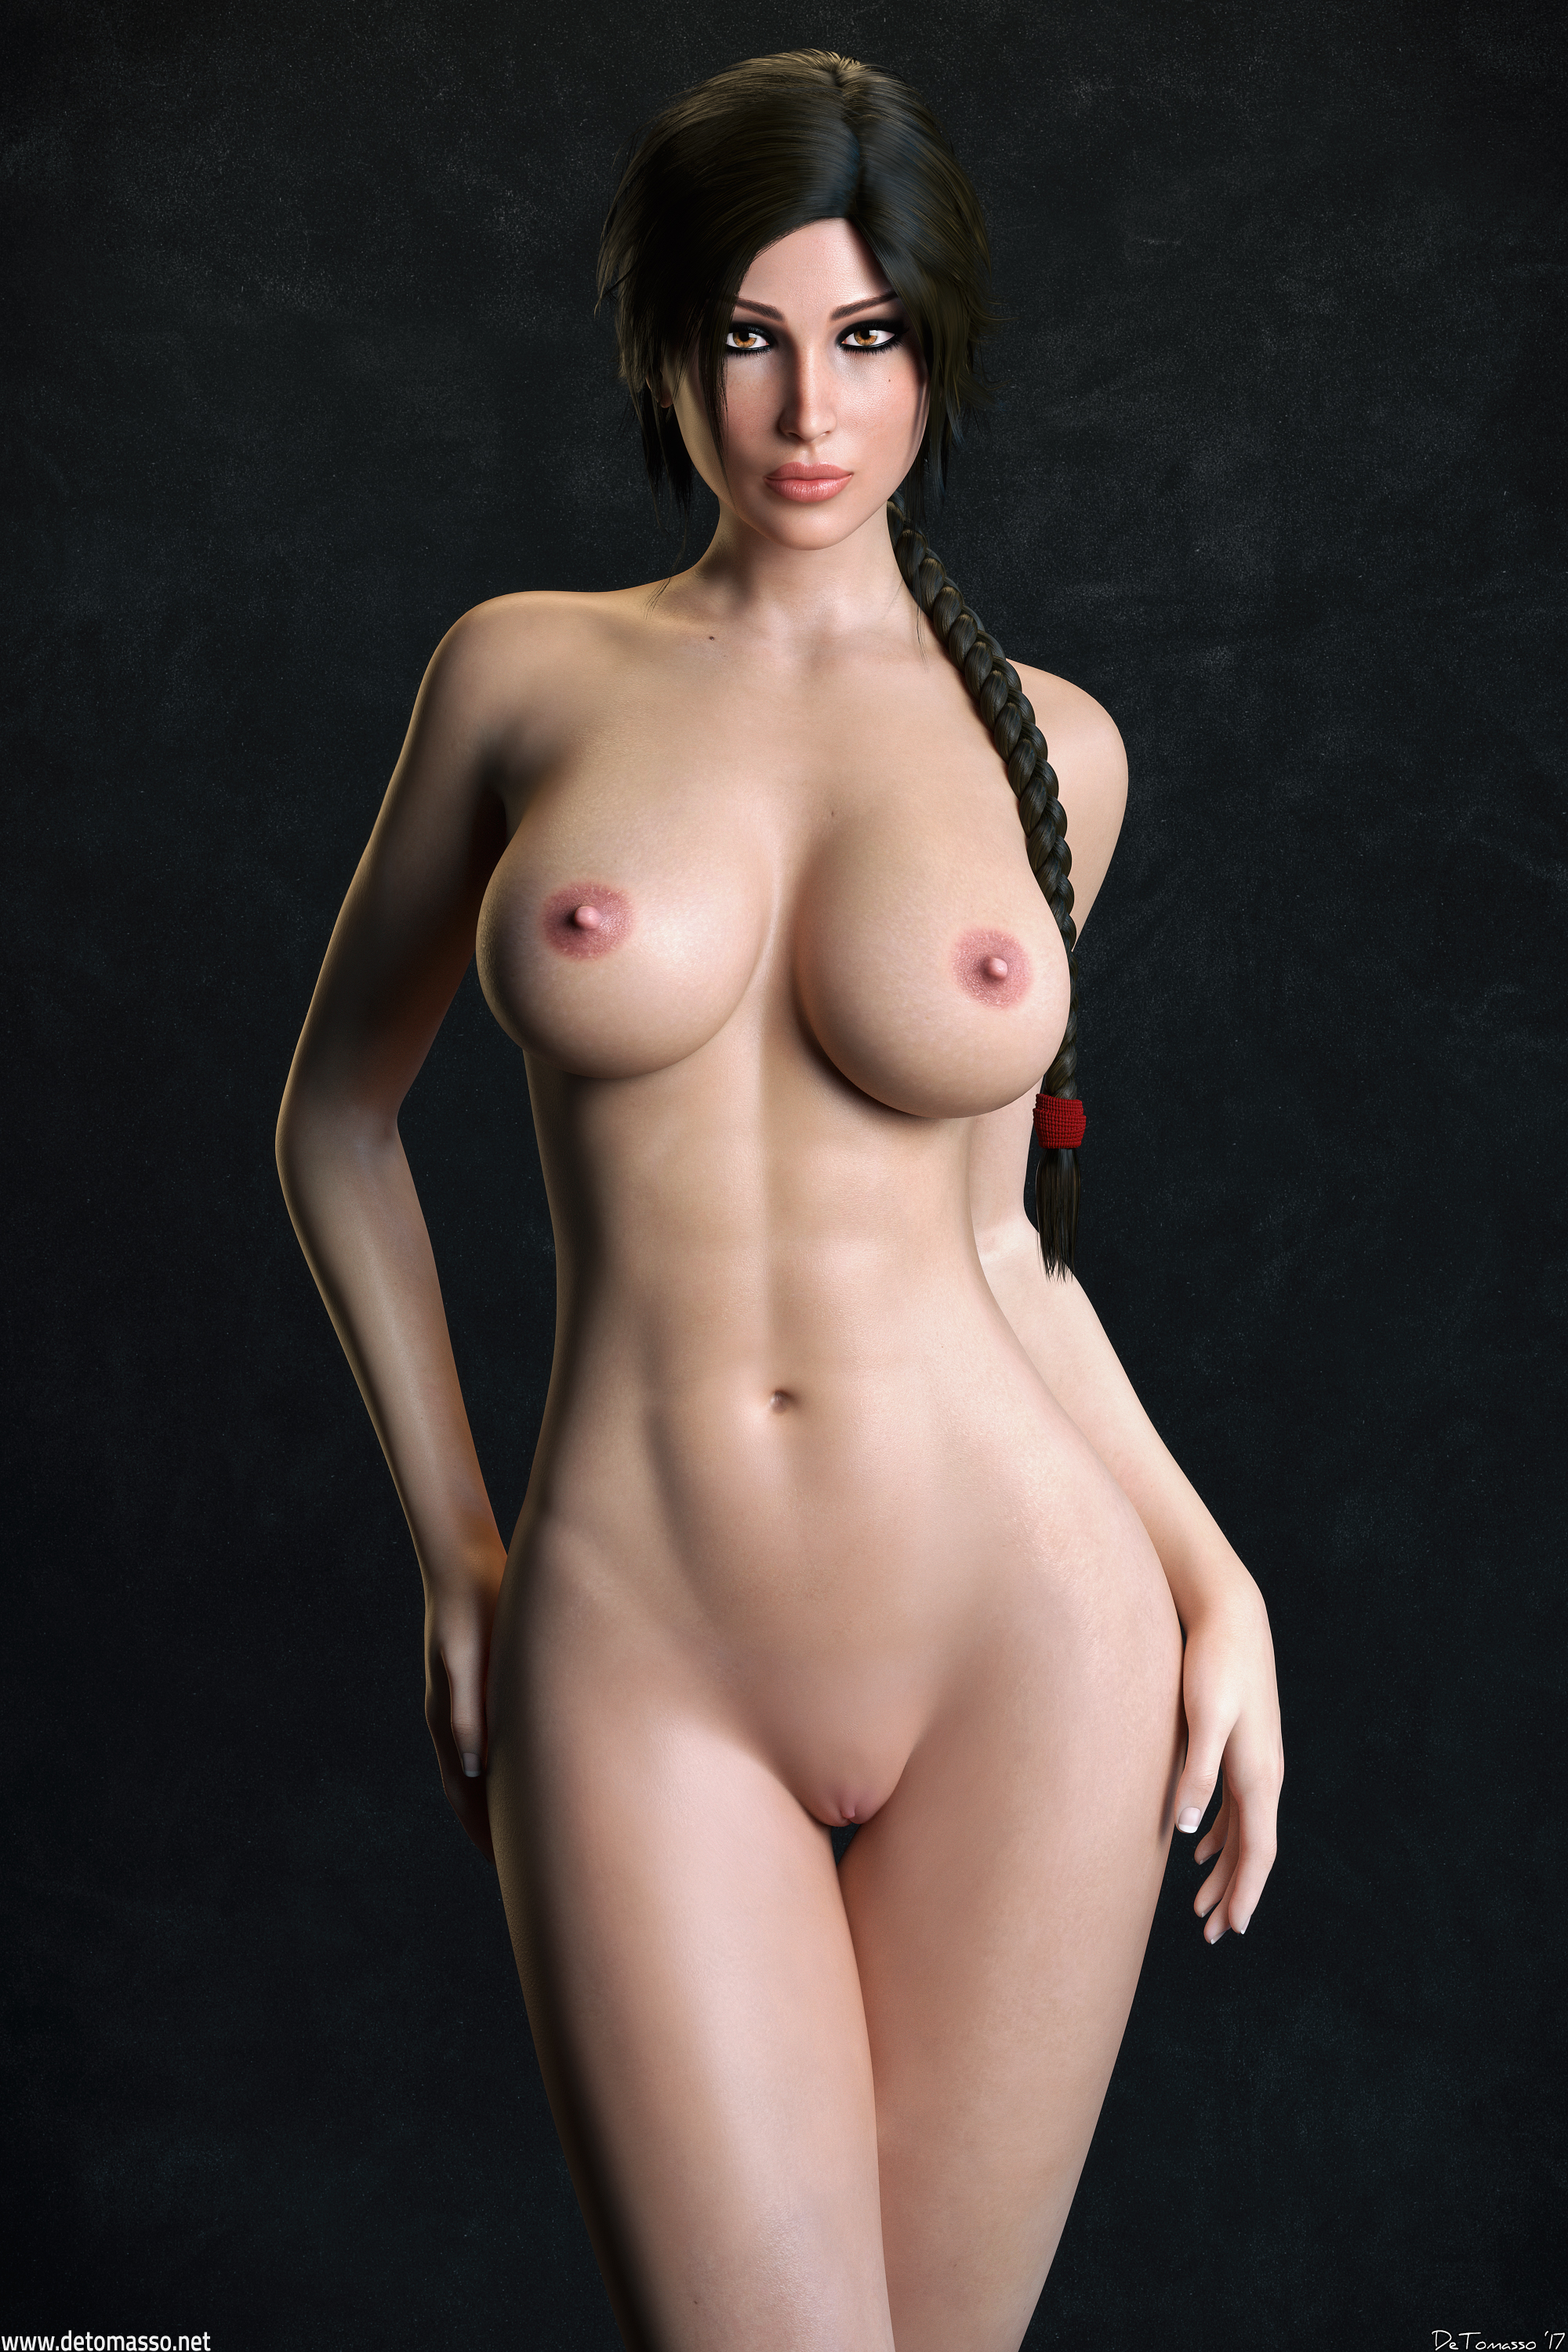 lara croft hot nude